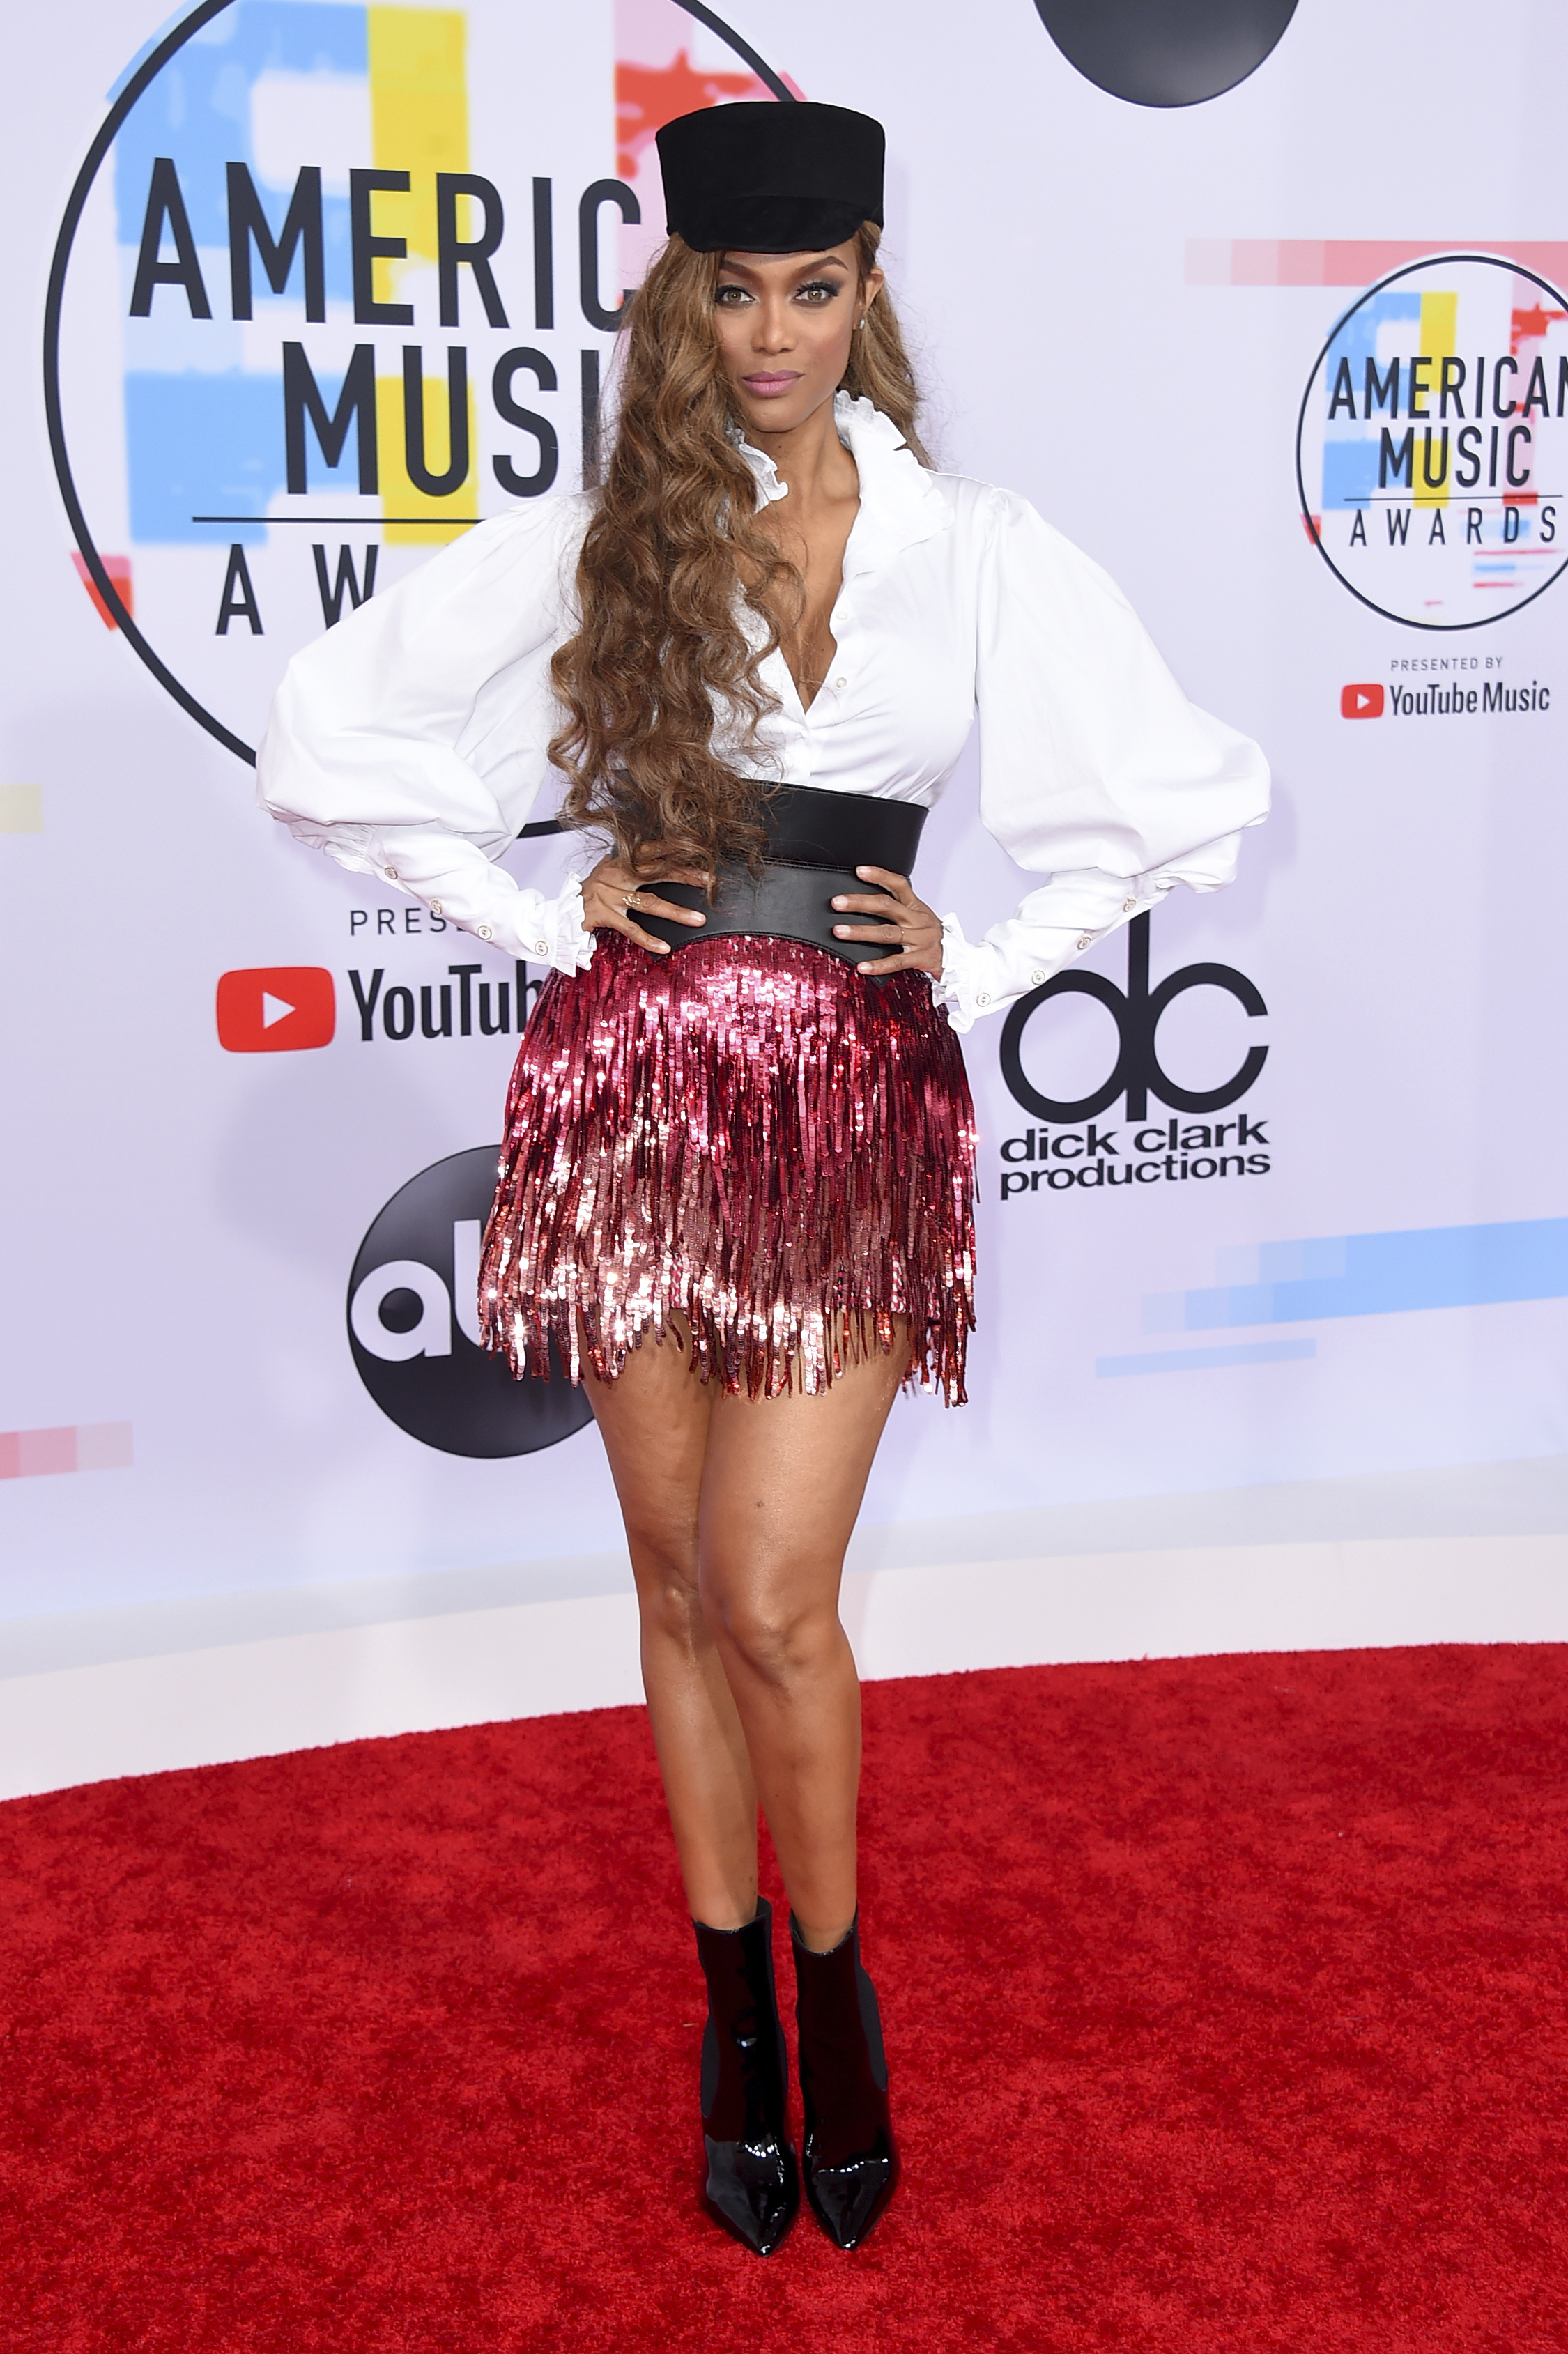 "<div class=""meta image-caption""><div class=""origin-logo origin-image none""><span>none</span></div><span class=""caption-text"">Tyra Banks arrives at the American Music Awards on Tuesday, Oct. 9, 2018, at the Microsoft Theater in Los Angeles. (Jordan Strauss/Invision/AP)</span></div>"